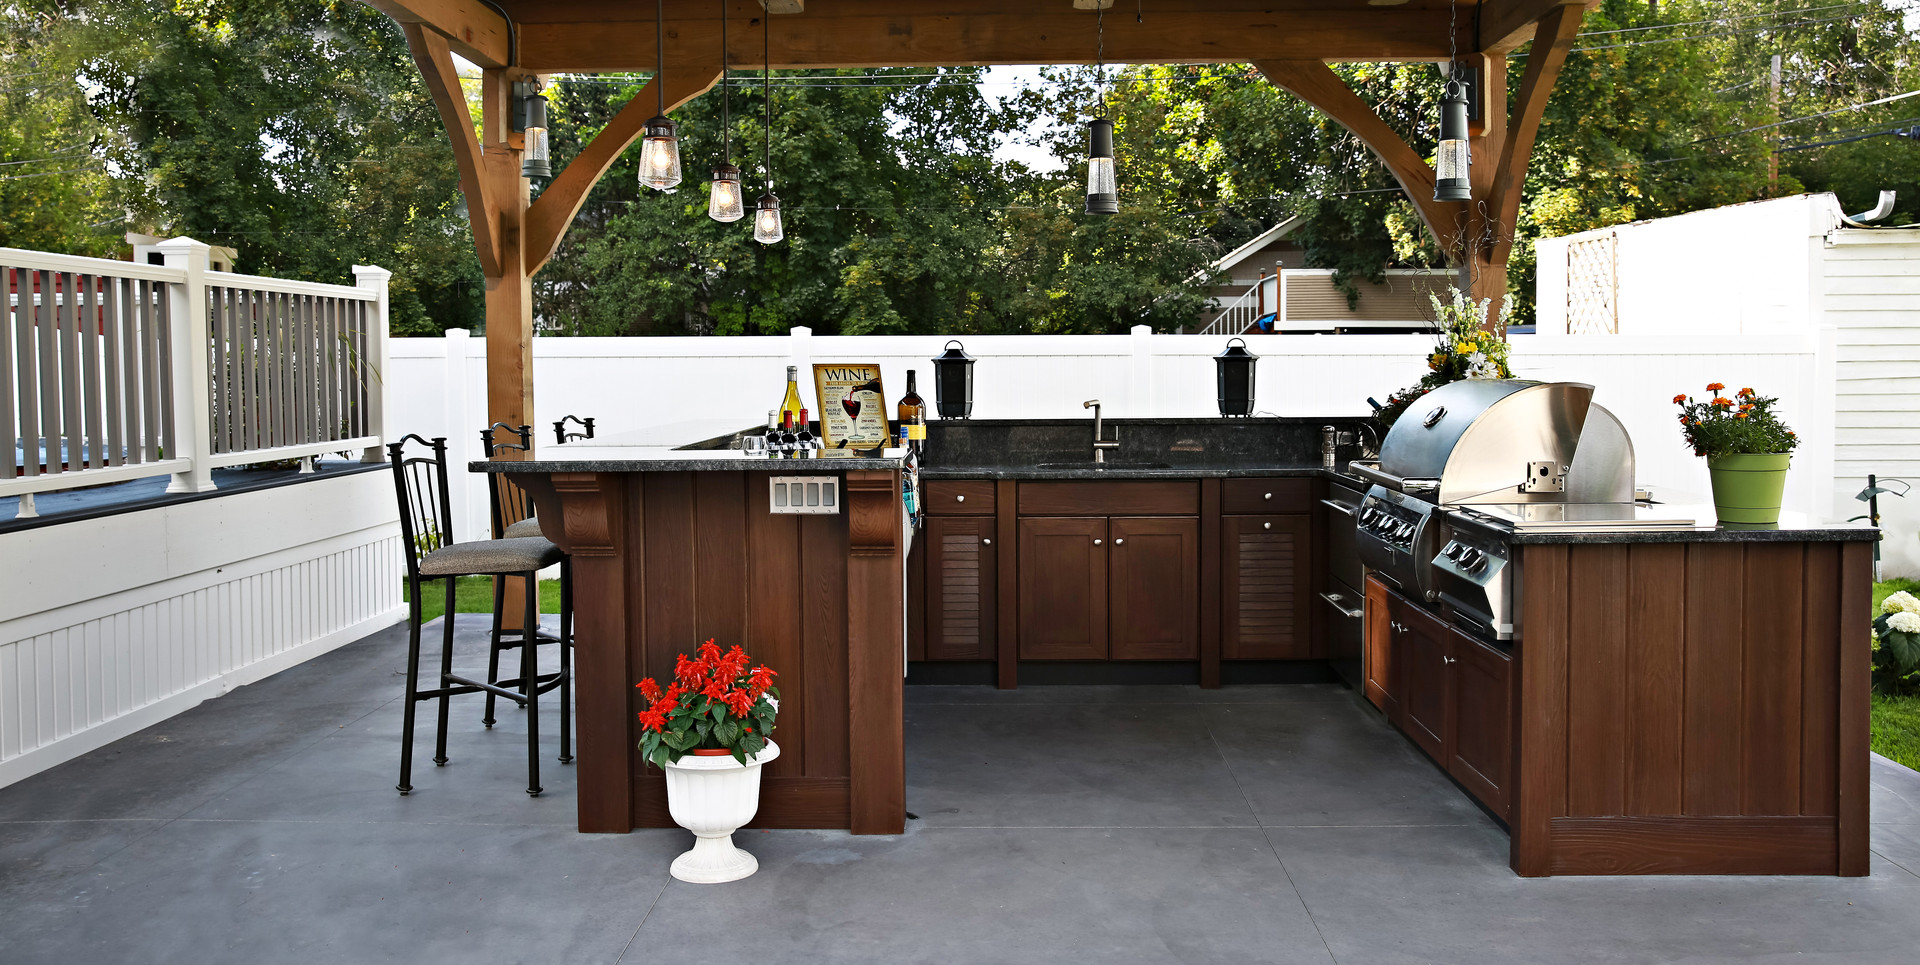 Backyard-with-raised-bar-and-grill